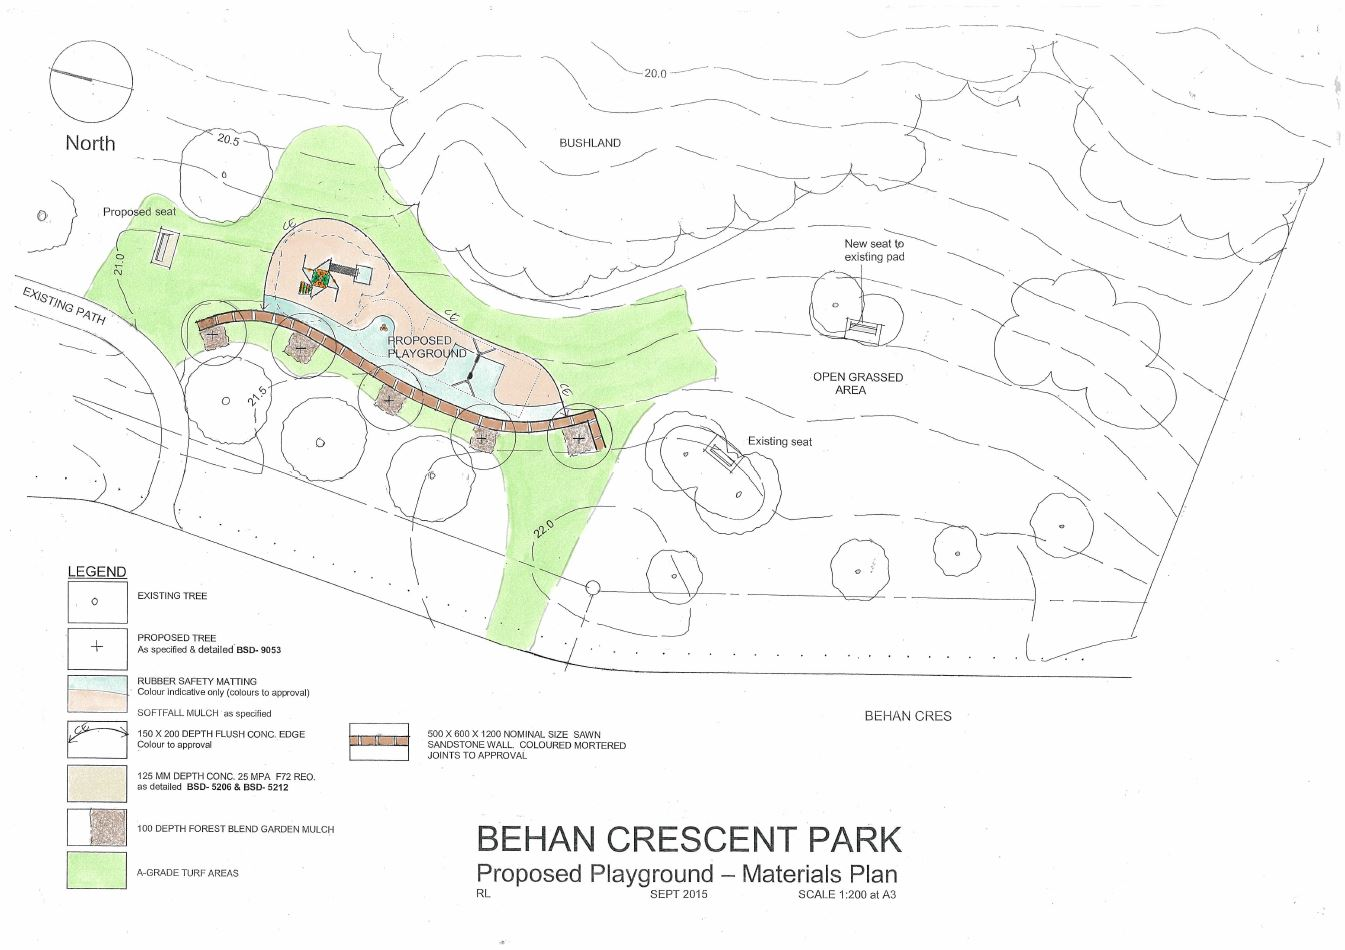 Behan Crescent Park - Construction will commence on Monday 2 November 2015